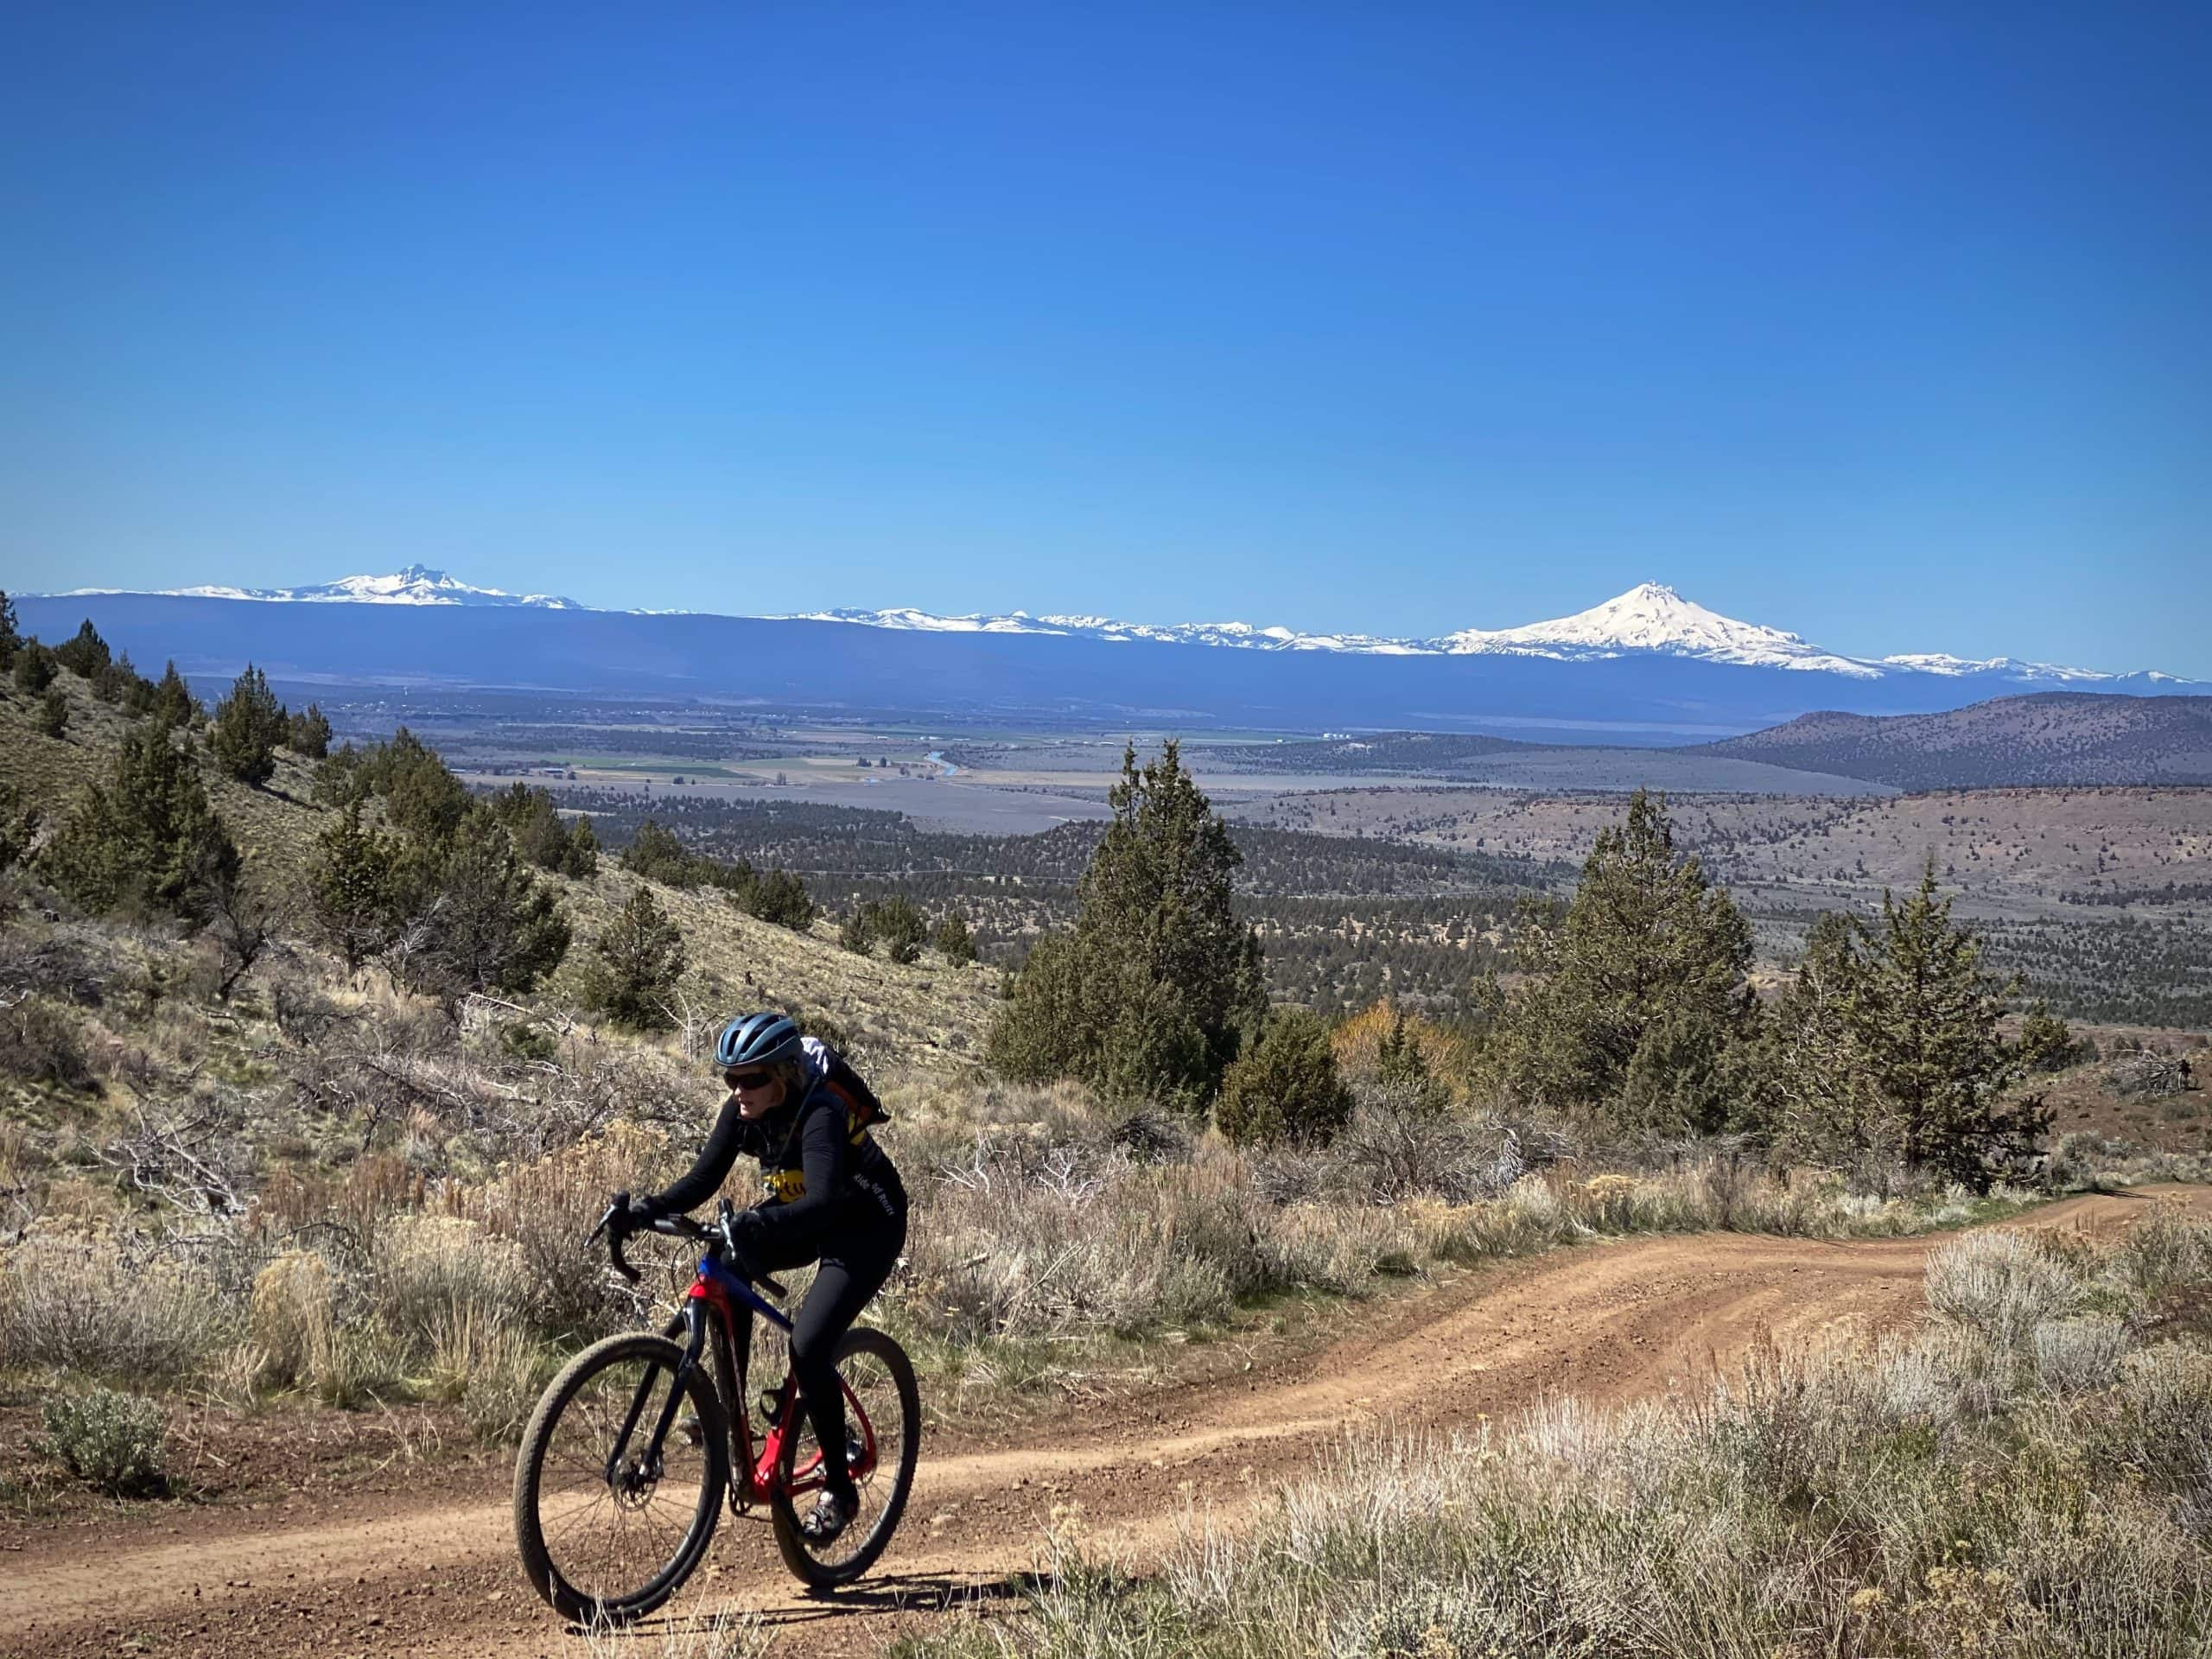 Gravel Girl nearing the high point for the day near Smith Rock state park in Oregon.